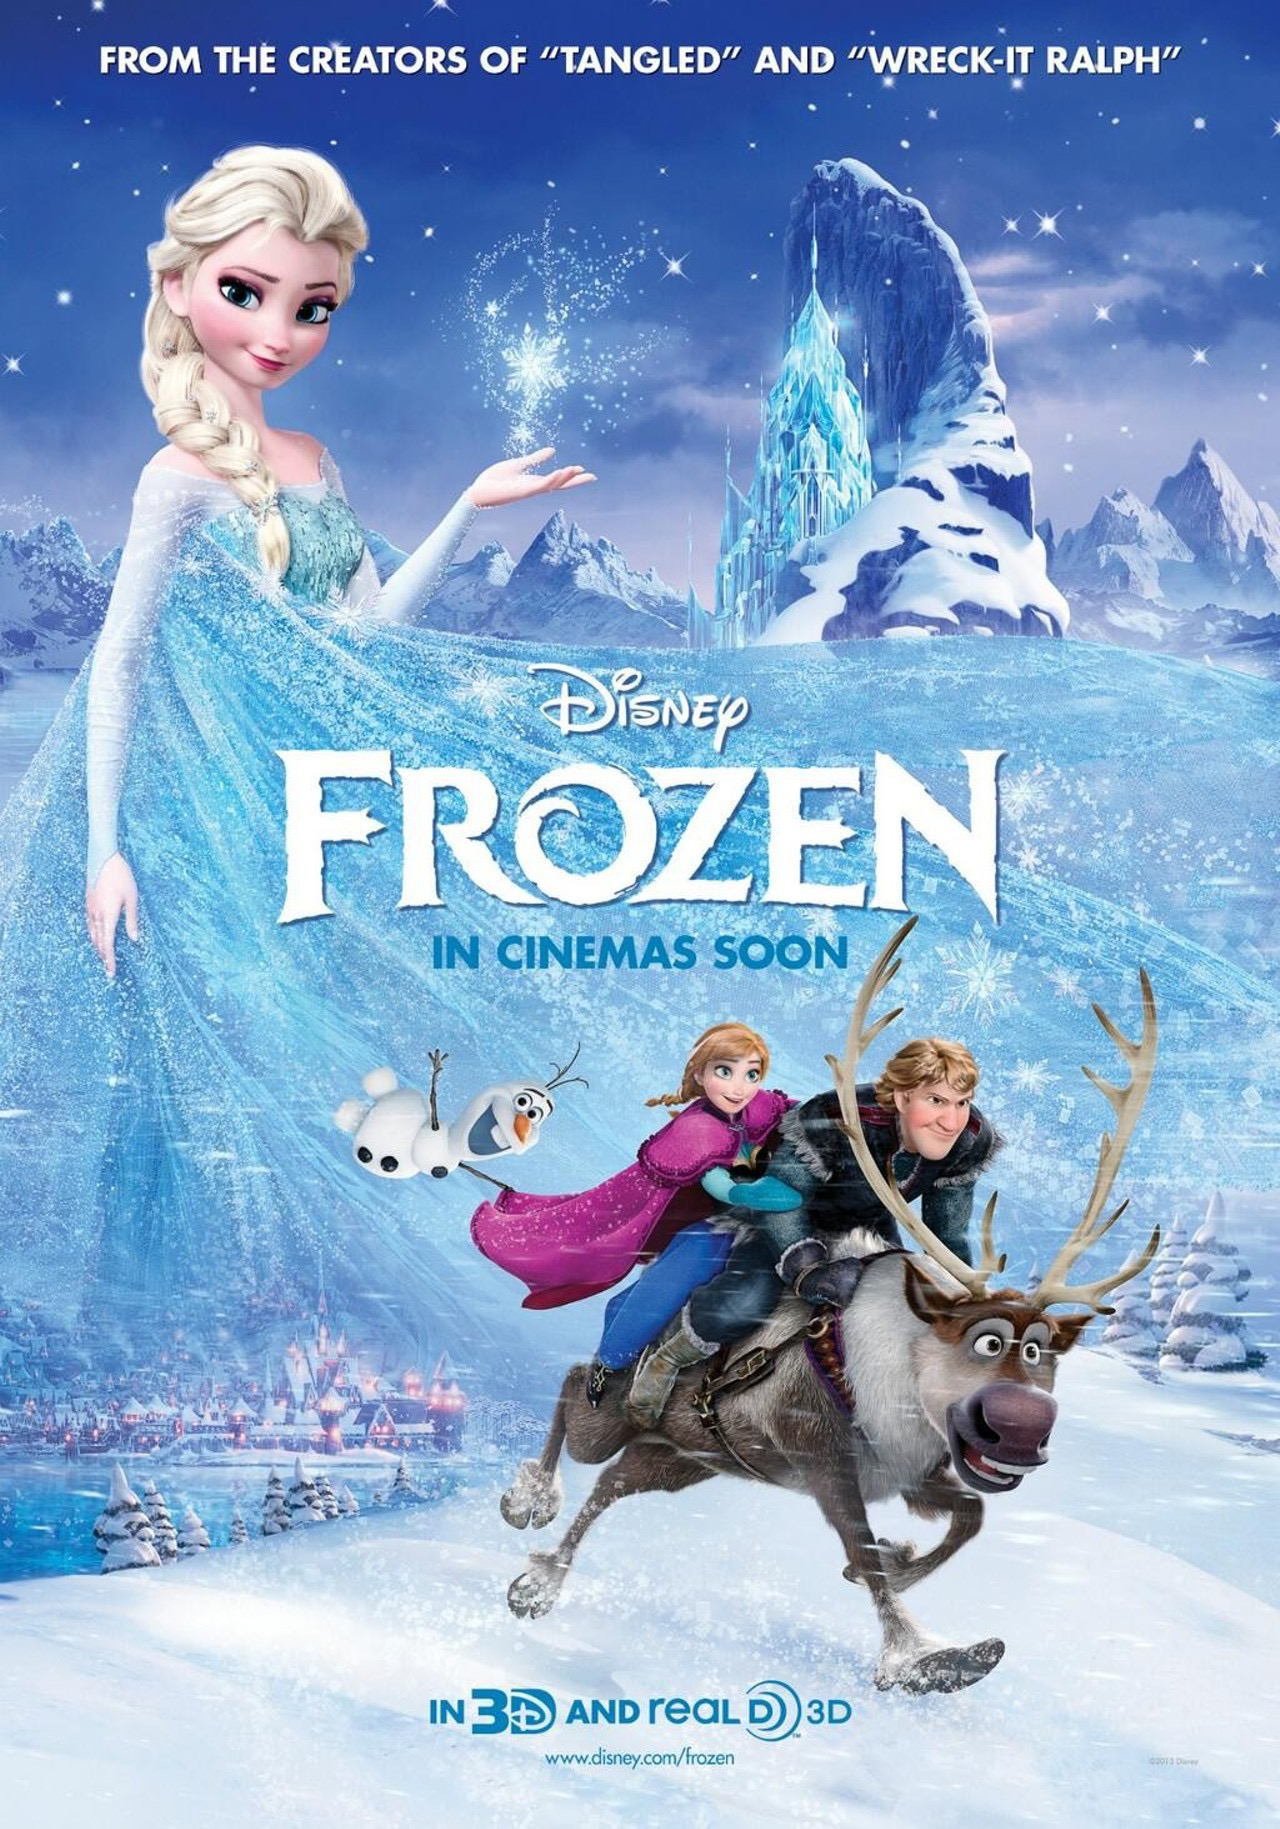 Frozen-movie-poster (1).jpg